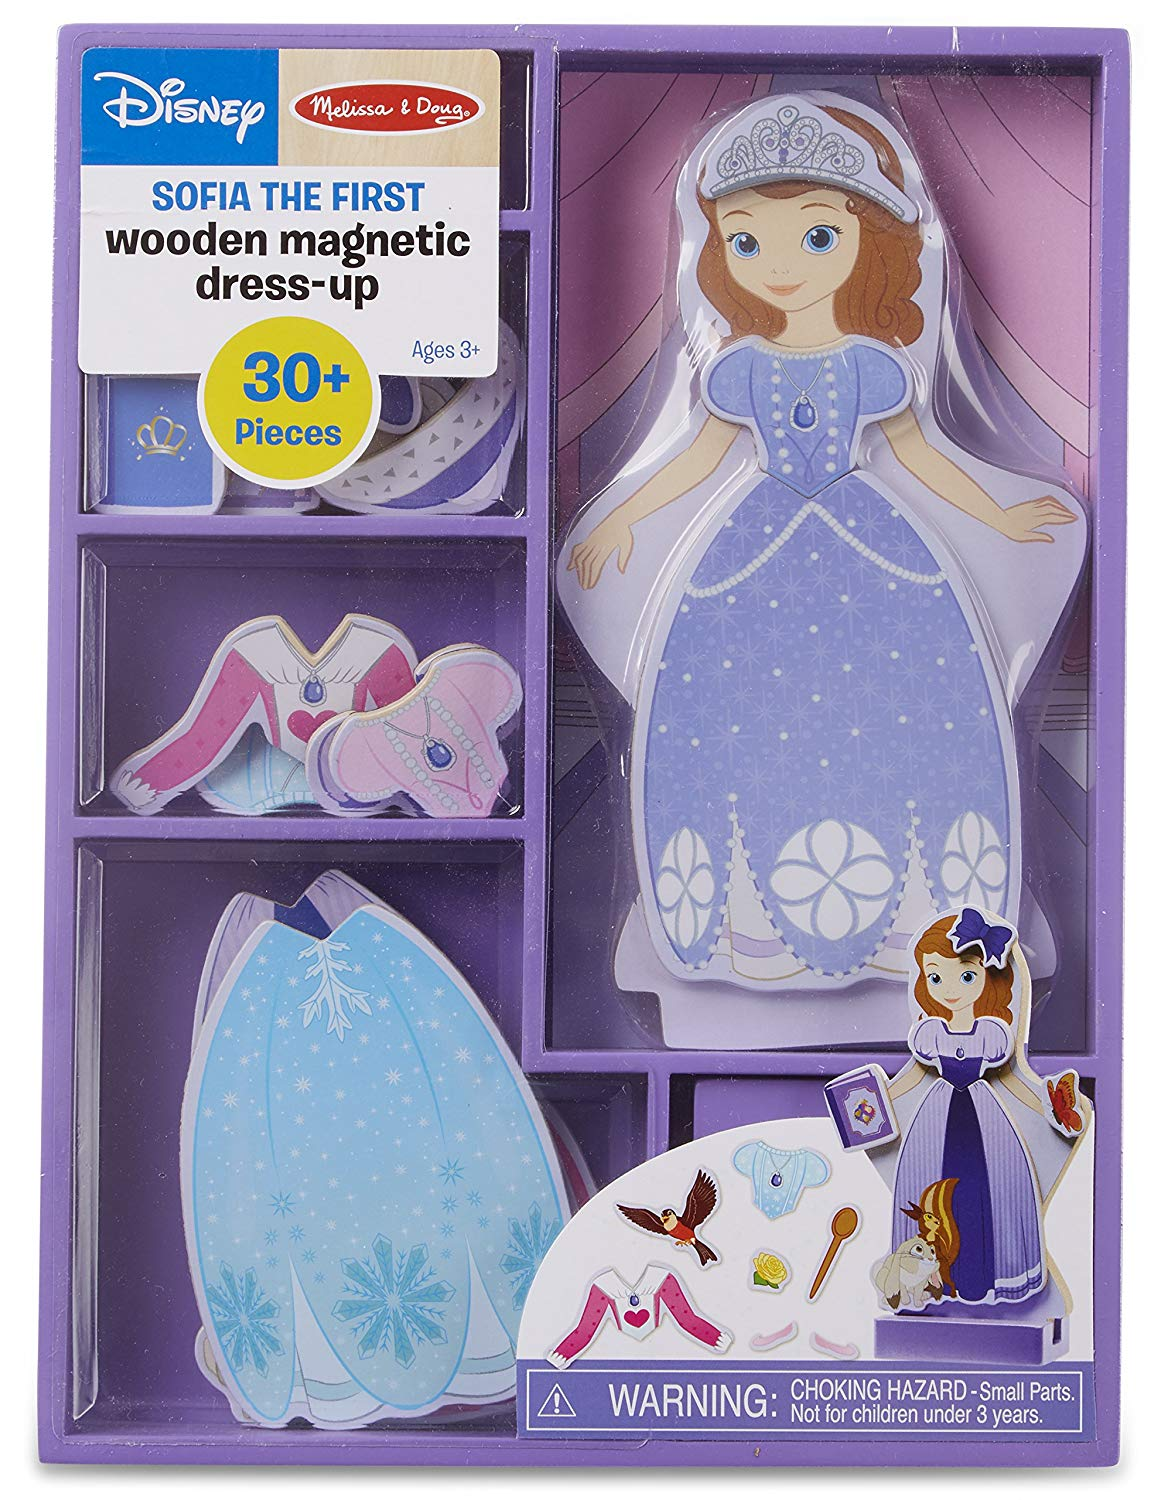 Sofia the First Magnetic Dress-Up